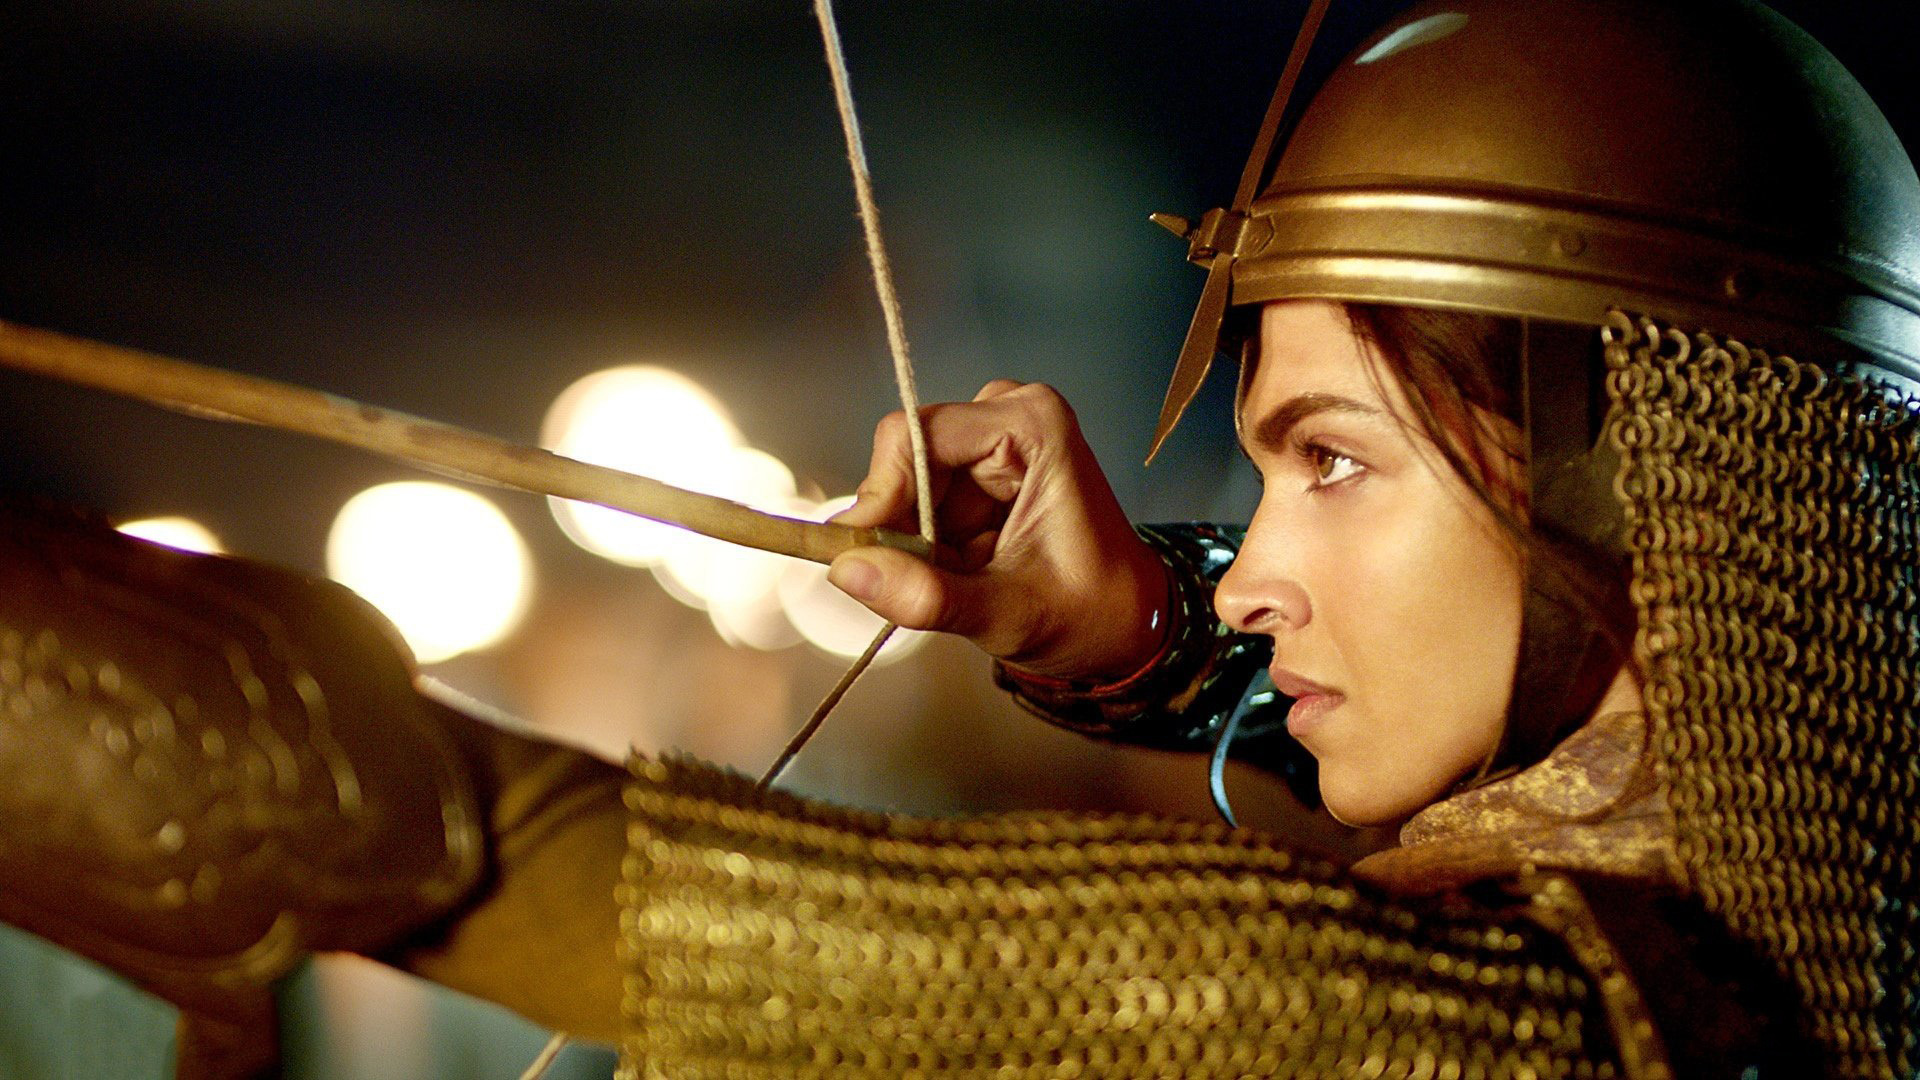 bajirao mastani full movie online watch download